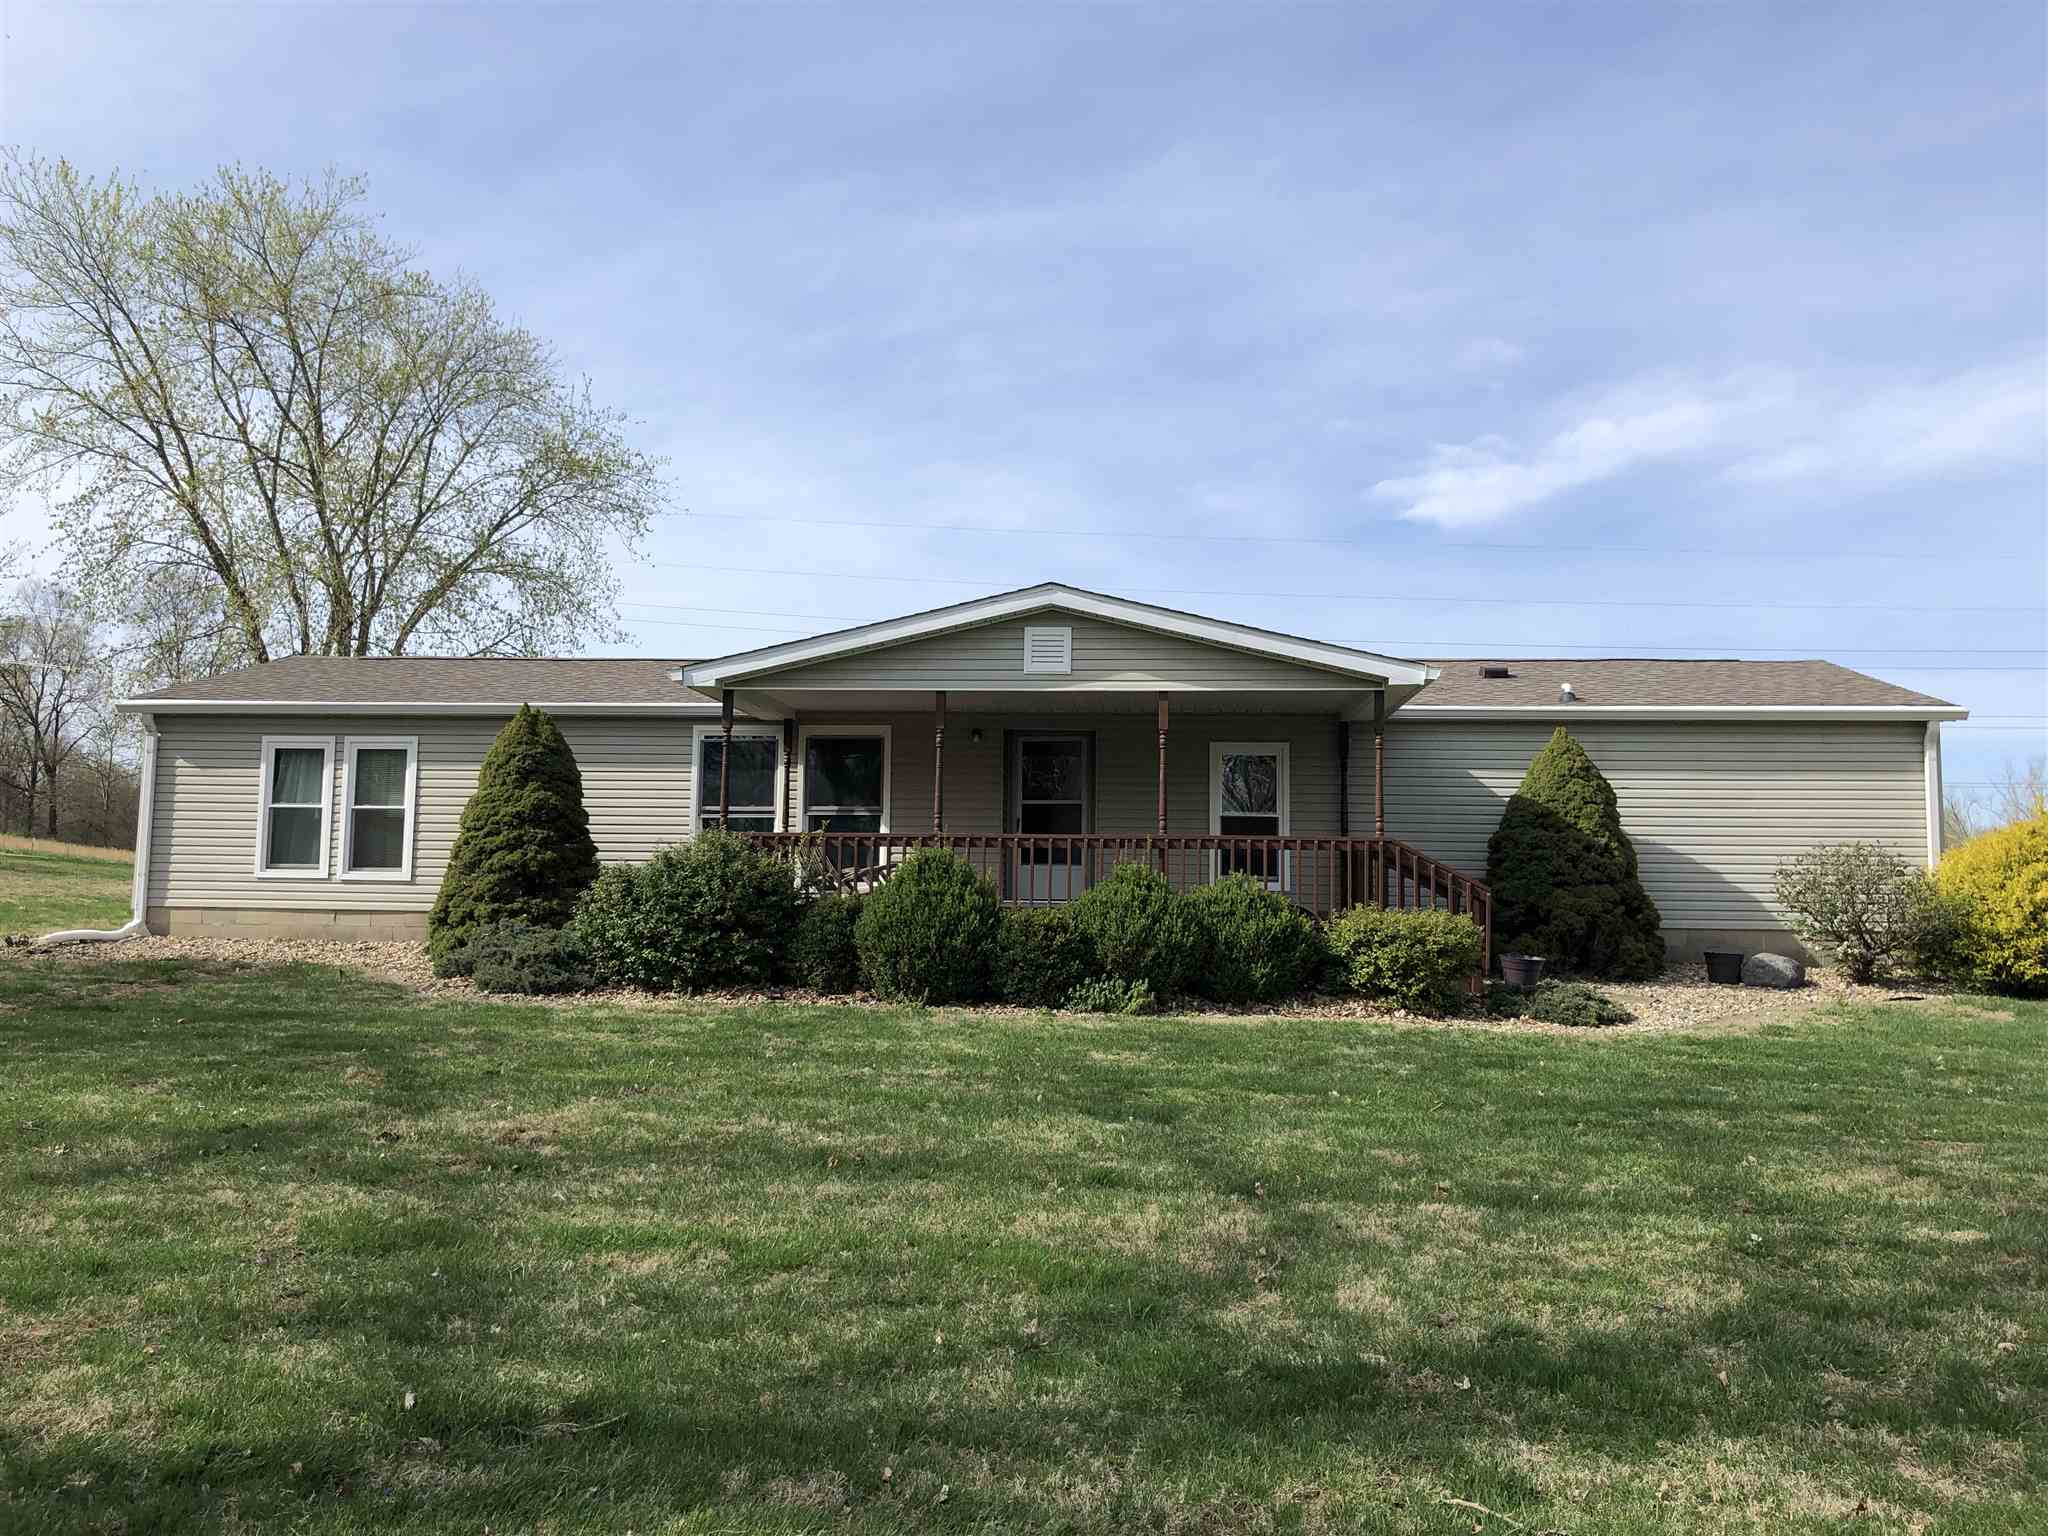 8089 St Rd 158 Bedford, IN 47421